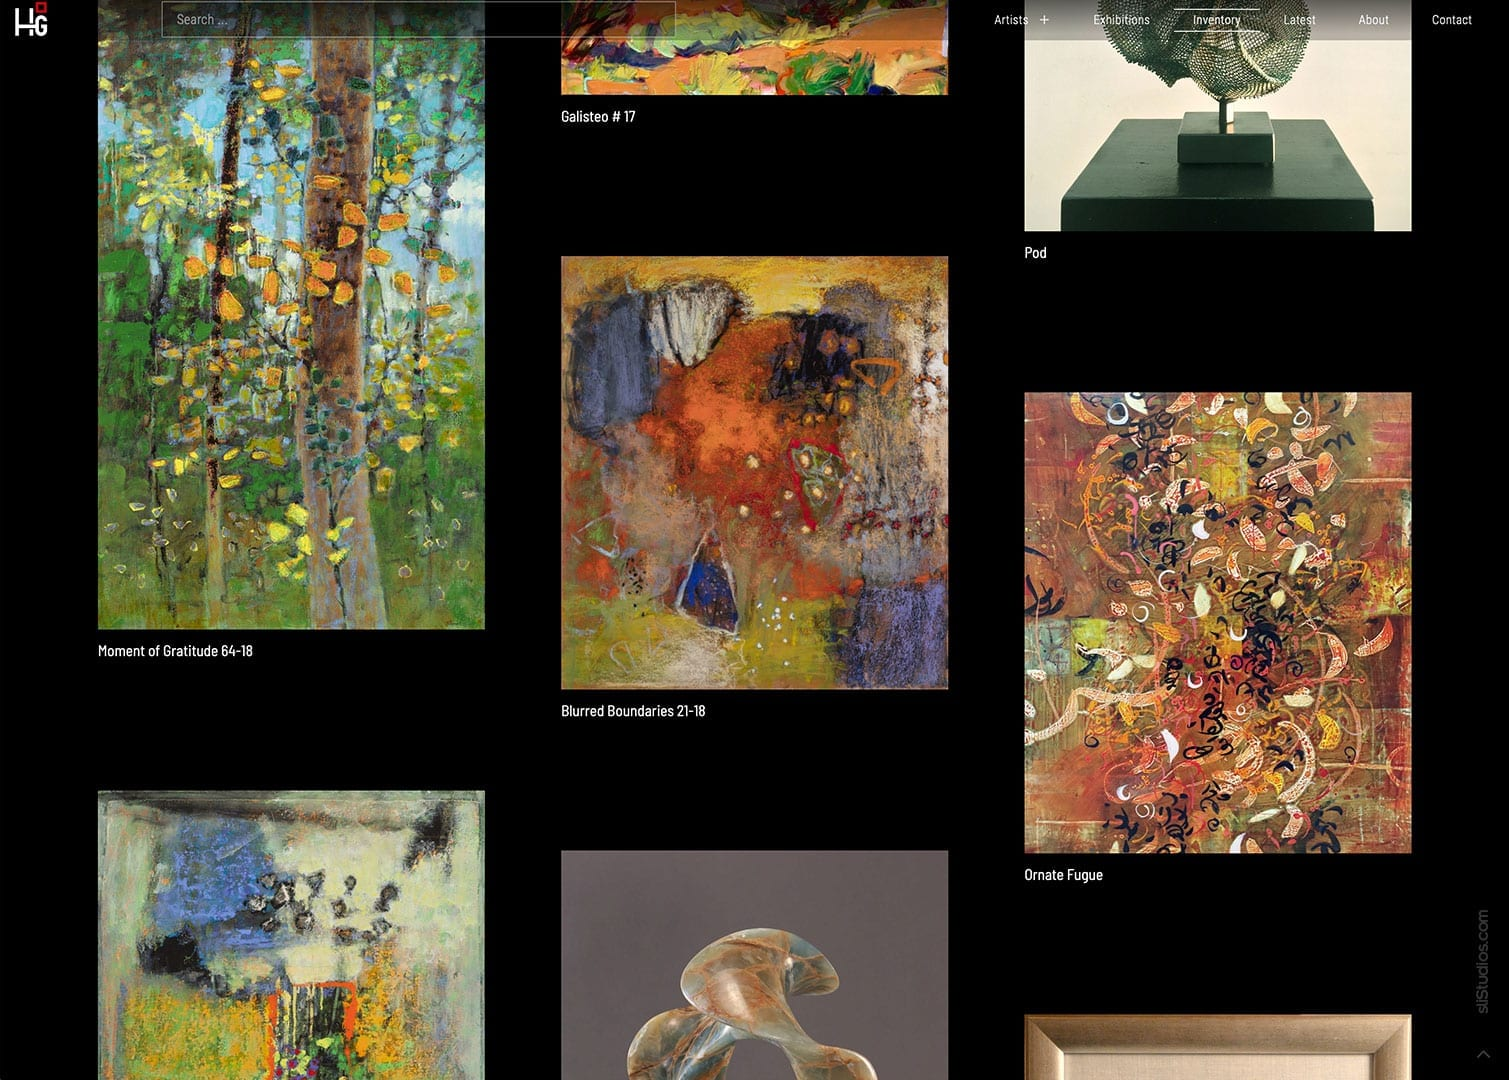 Hunter Squared Gallery Website Design - Santa Fe, New Mexico - sliStudios Web Development Miami